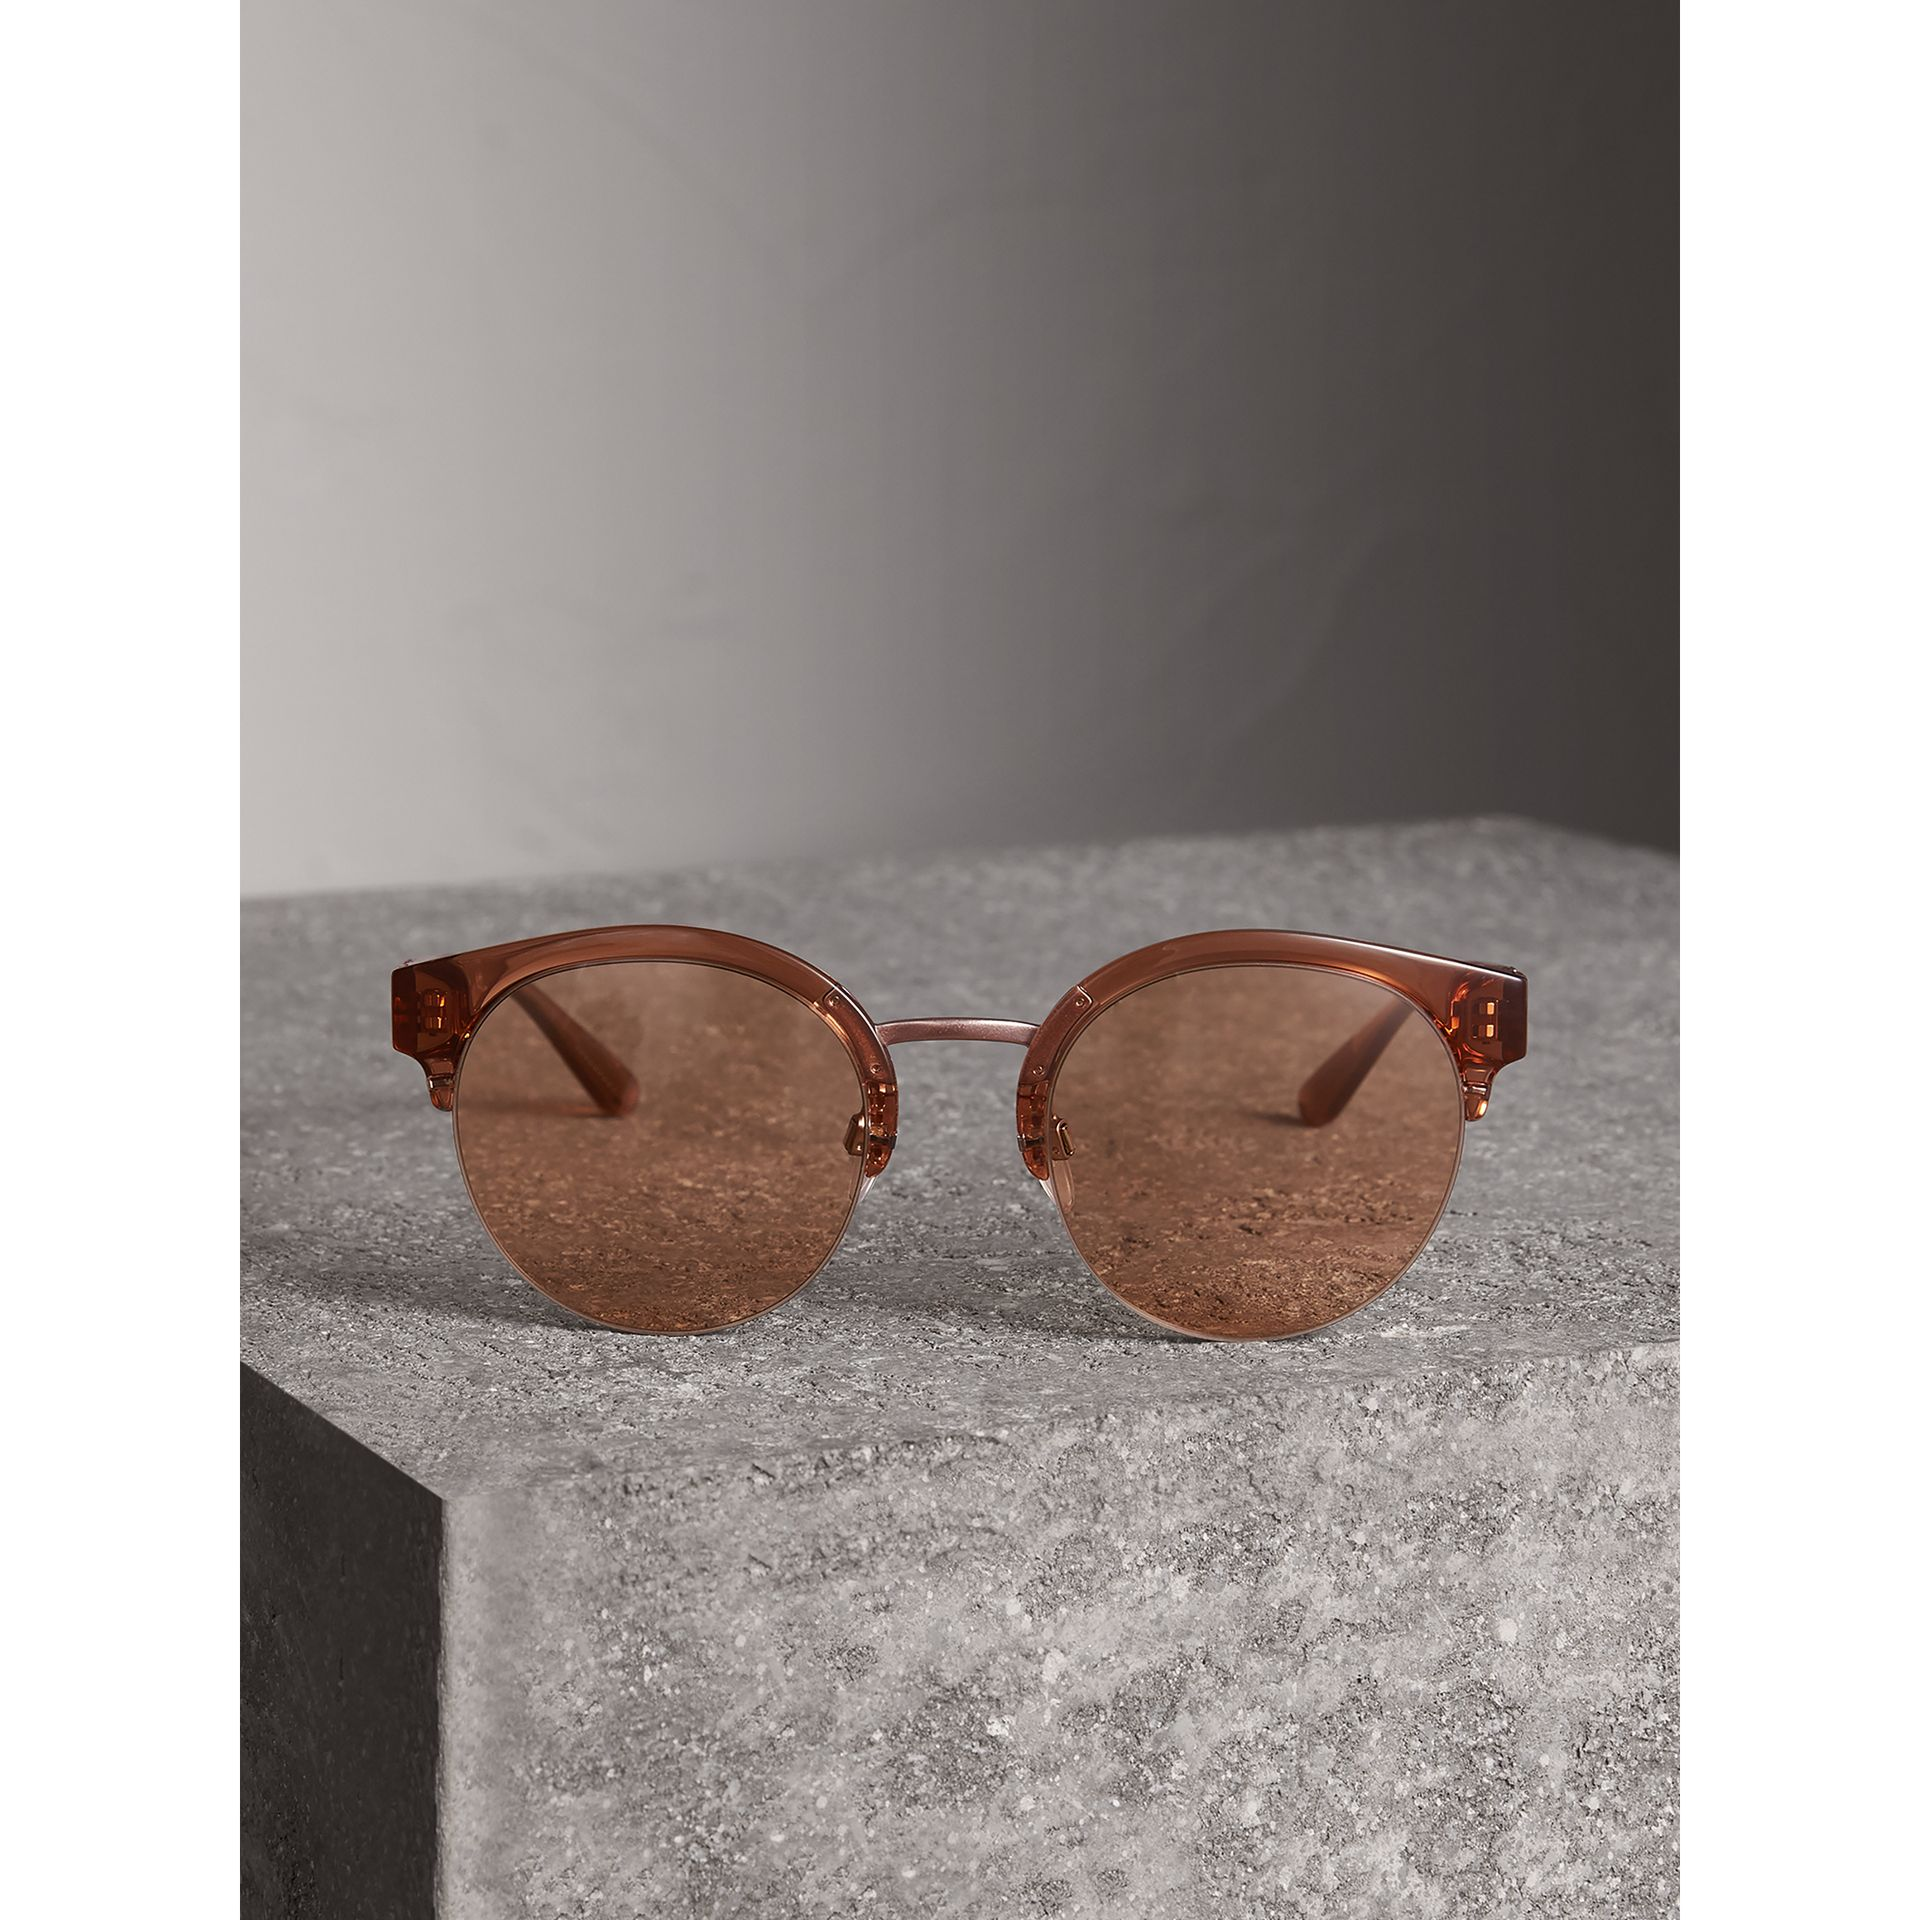 Check Detail Round Half-frame Sunglasses in Sand - Women | Burberry Australia - gallery image 4